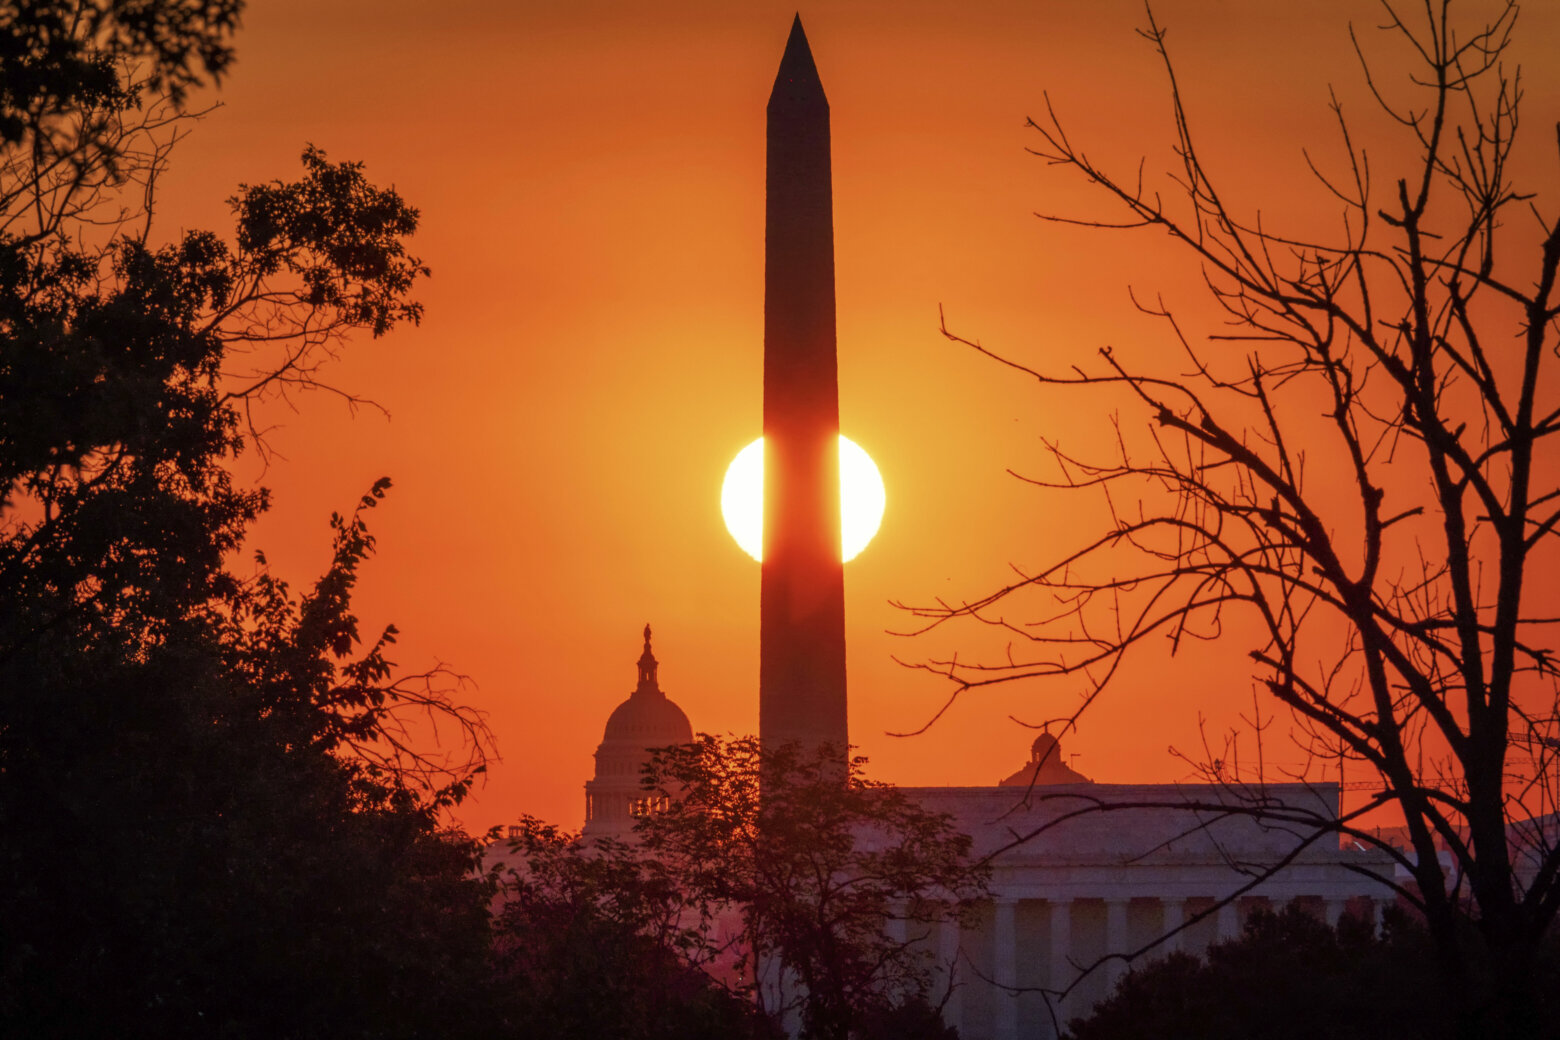 After 'a very hard year,' DC edges up US News Best Places to Live rankings